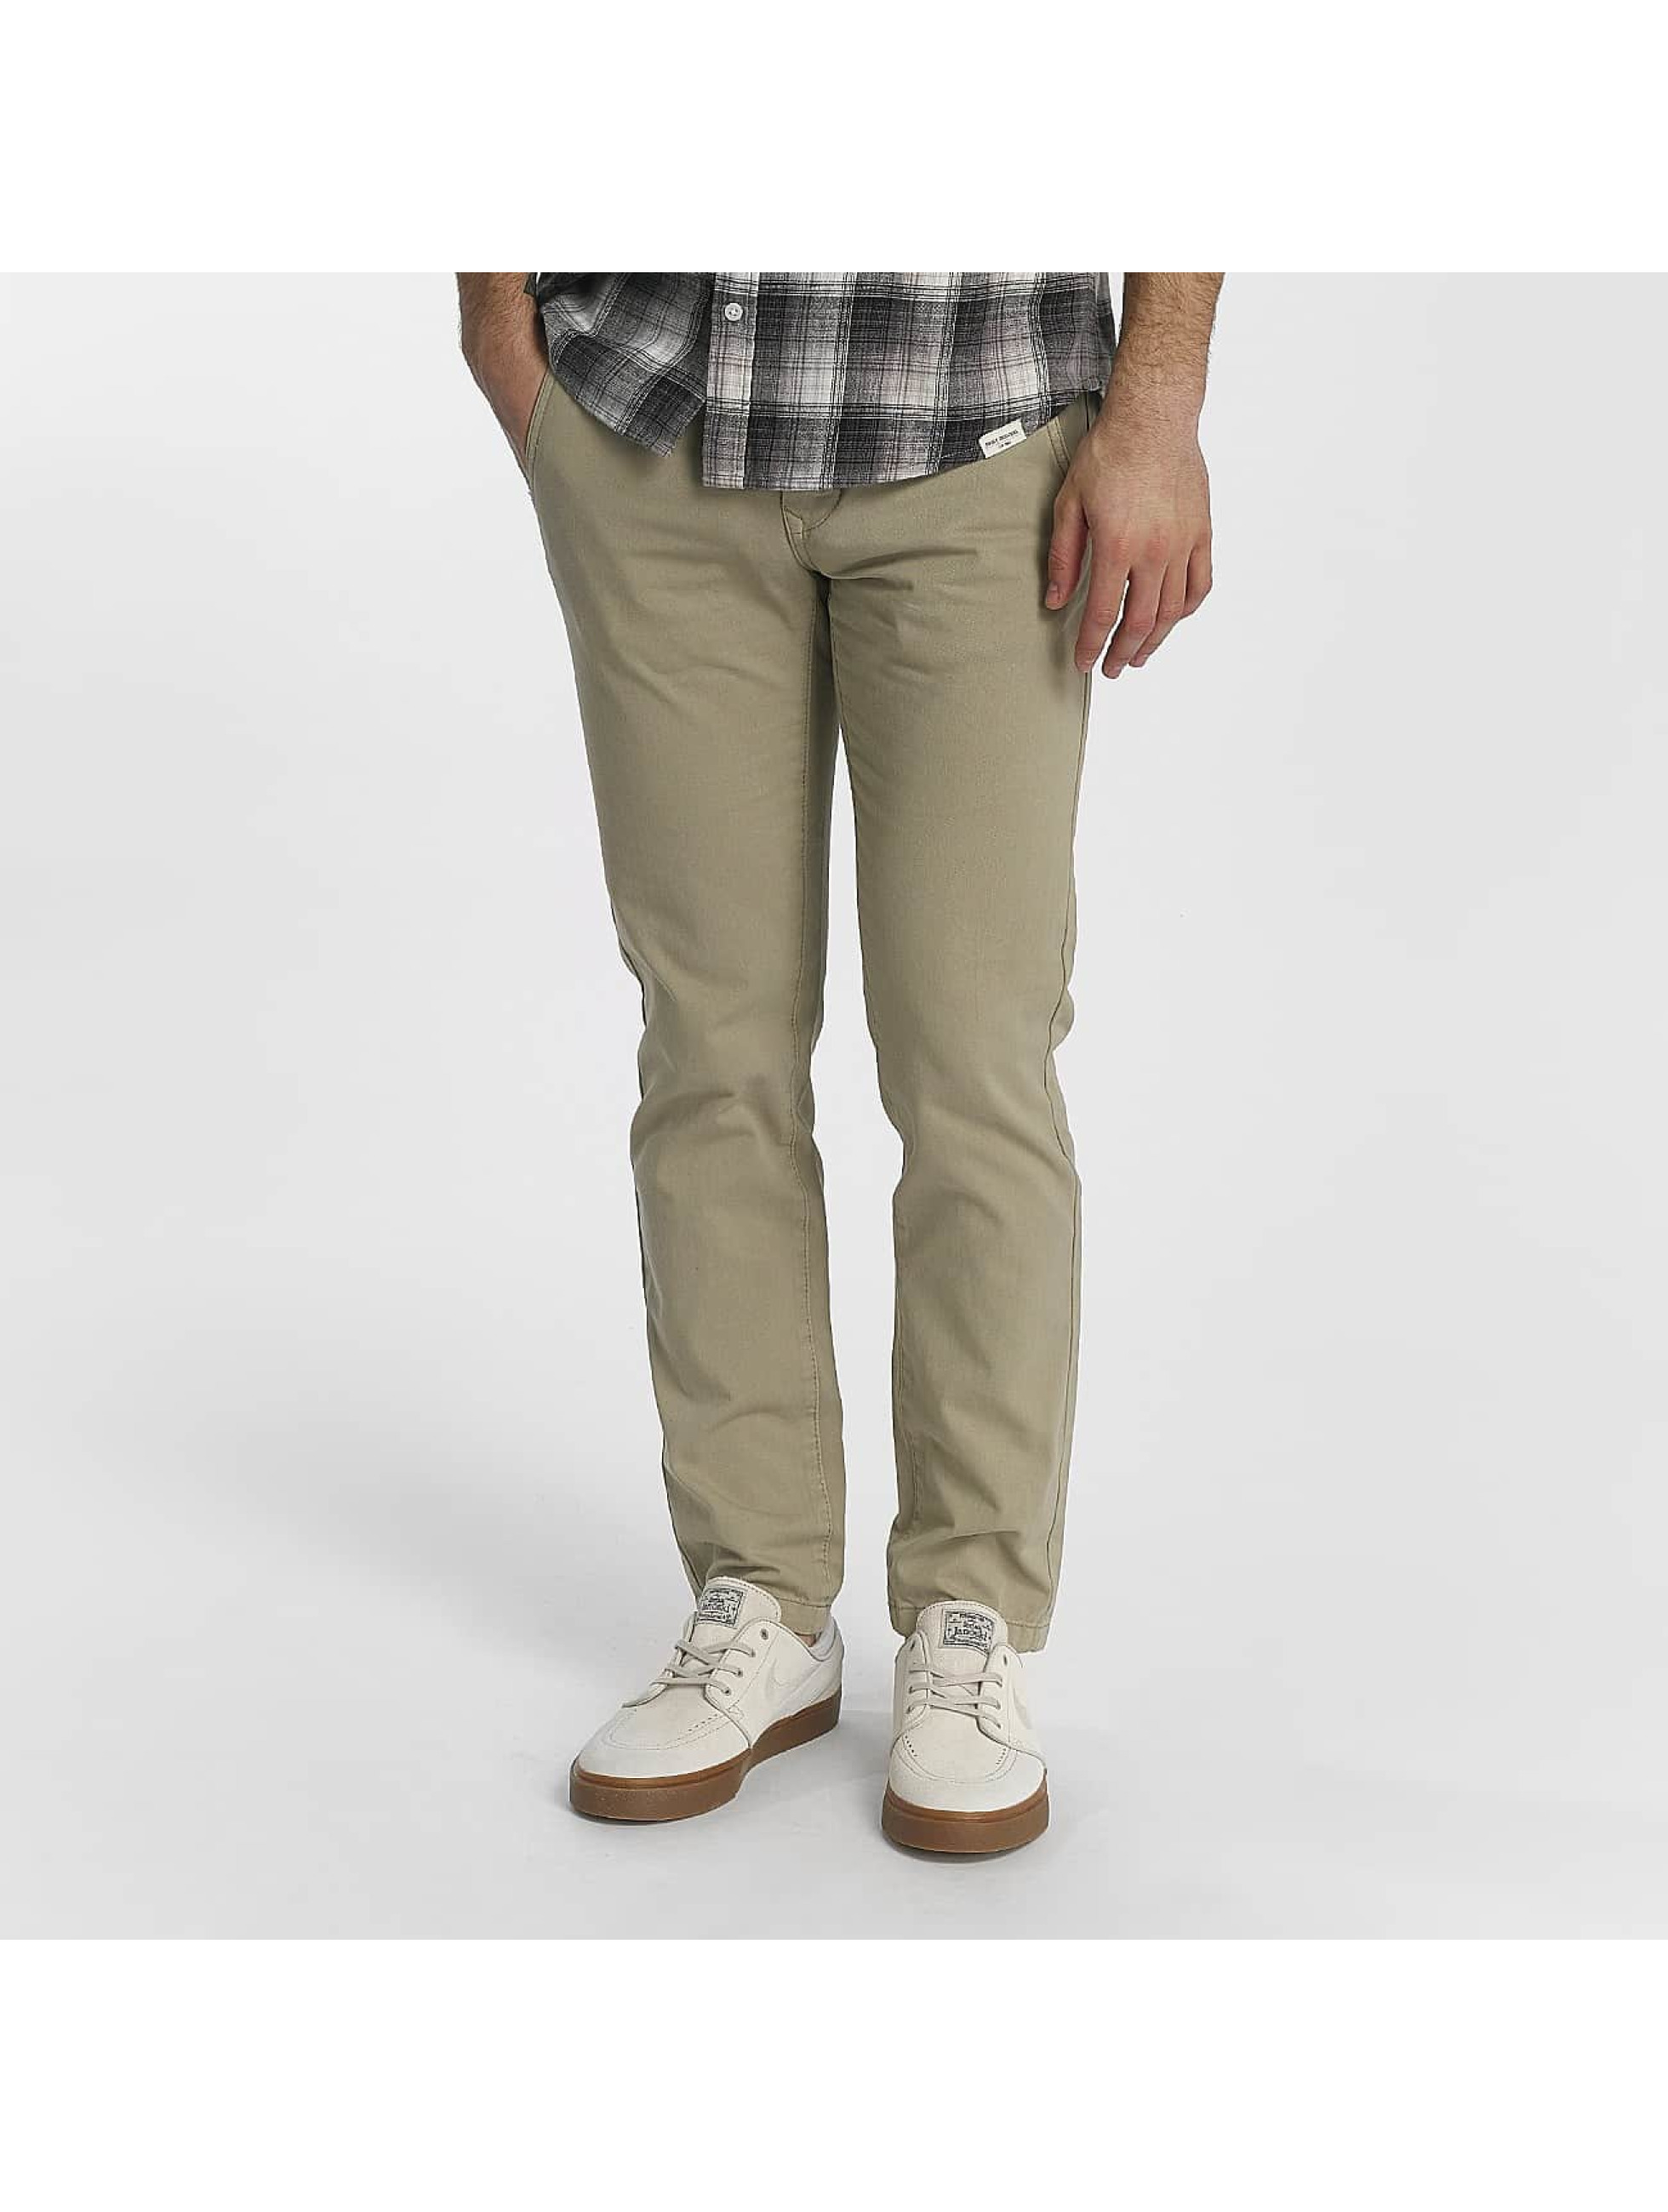 SHINE Original Pantalon chino Abdul beige